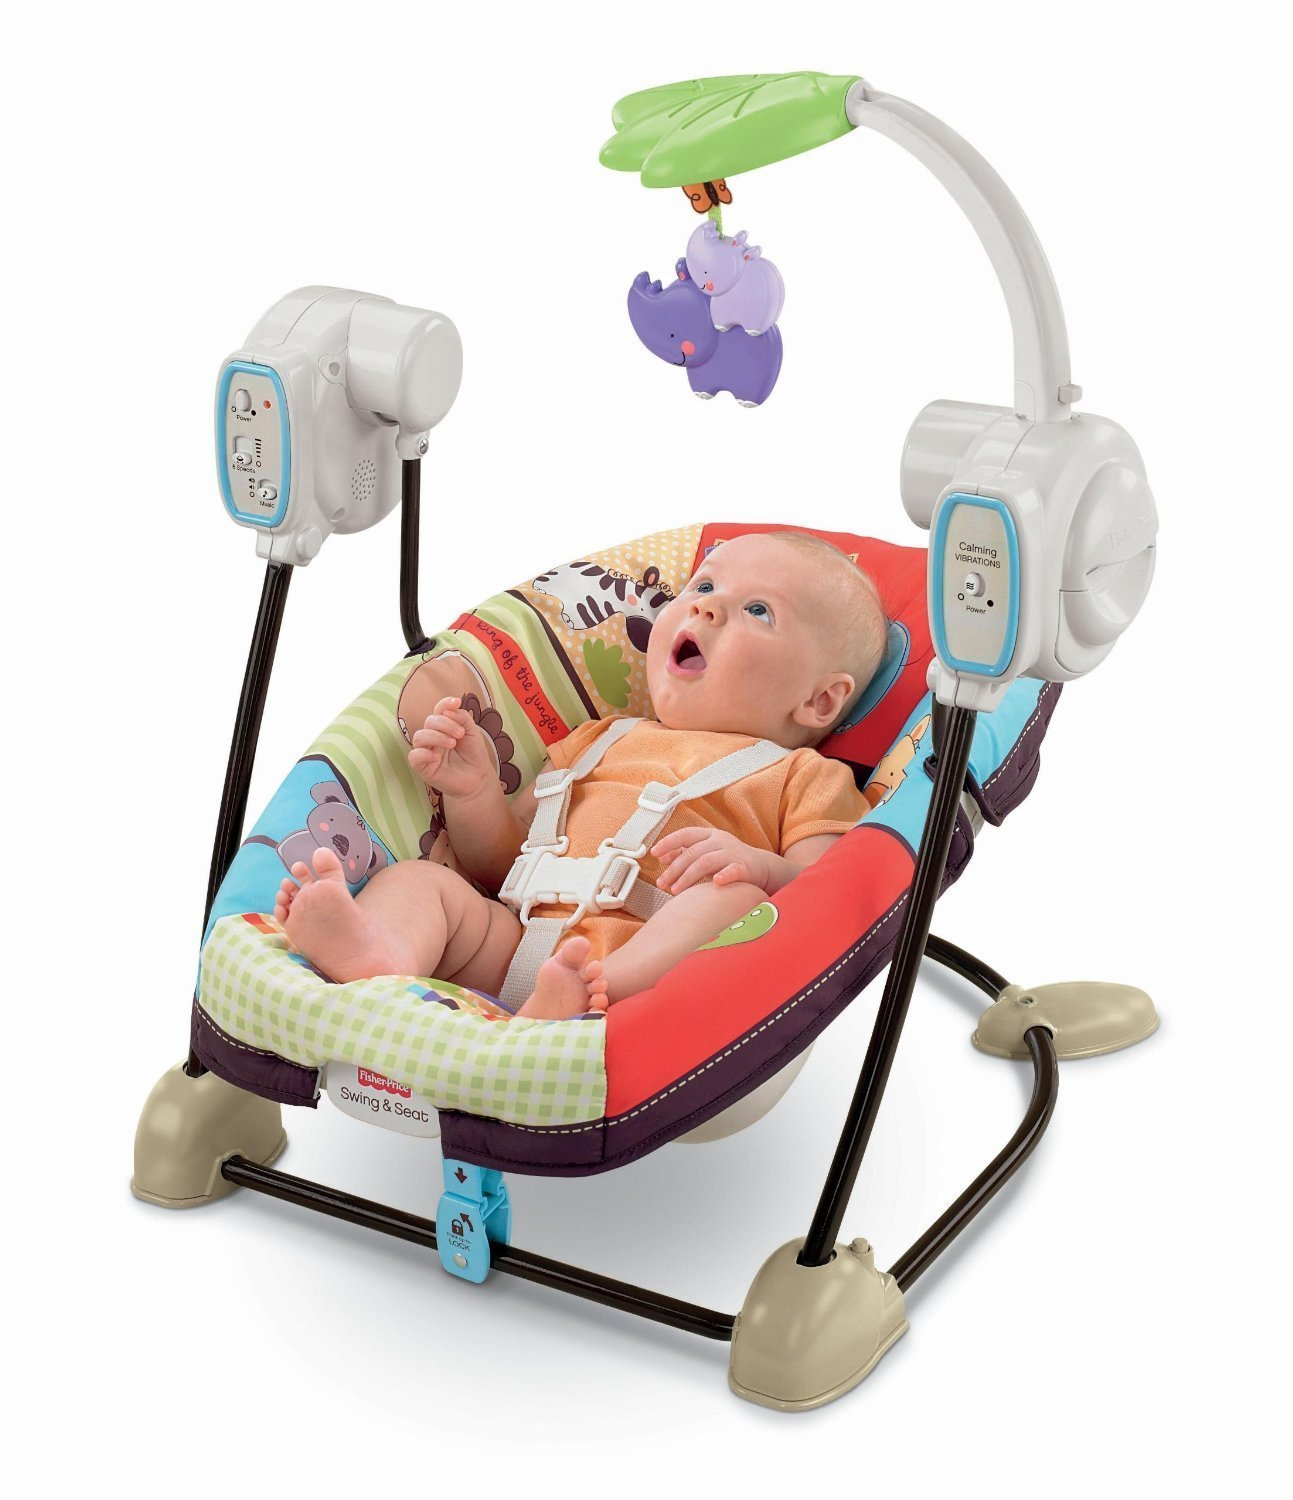 71S9ZX3A24L. SL1500 The Best Fisher-Price Baby Swings for 2021 Review